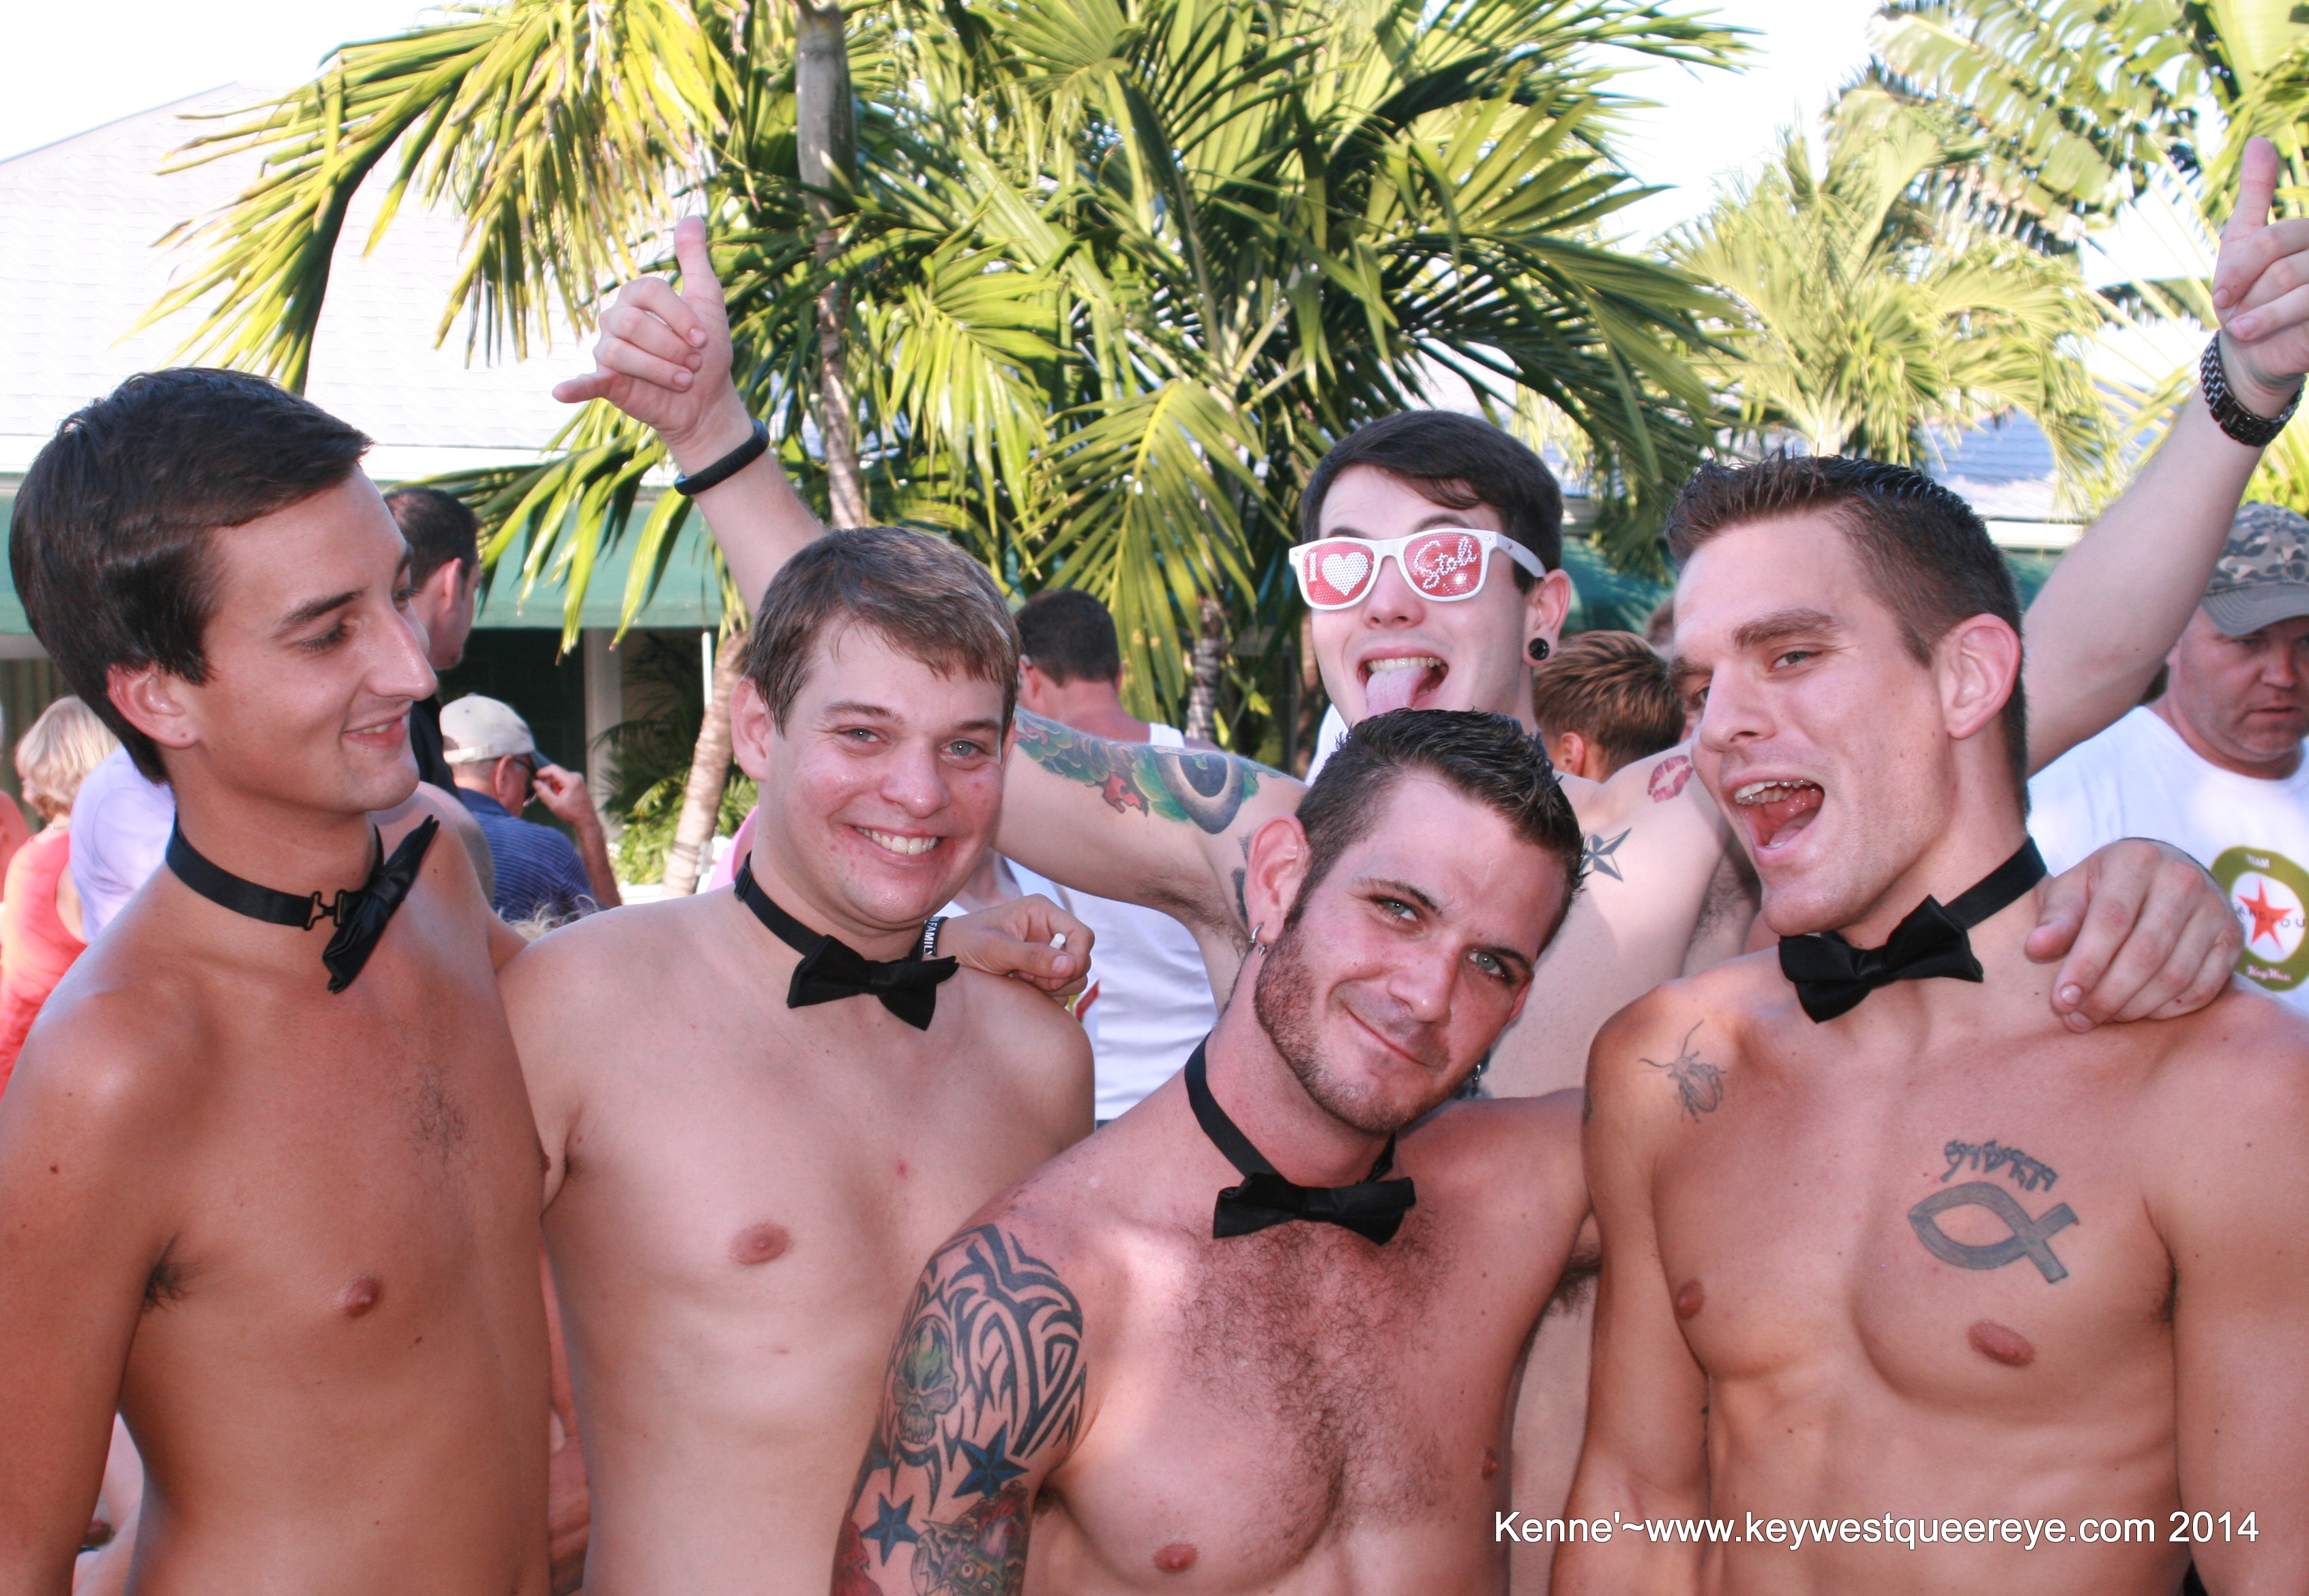 Key West Gay Bars, Nightlife, and Restaurants